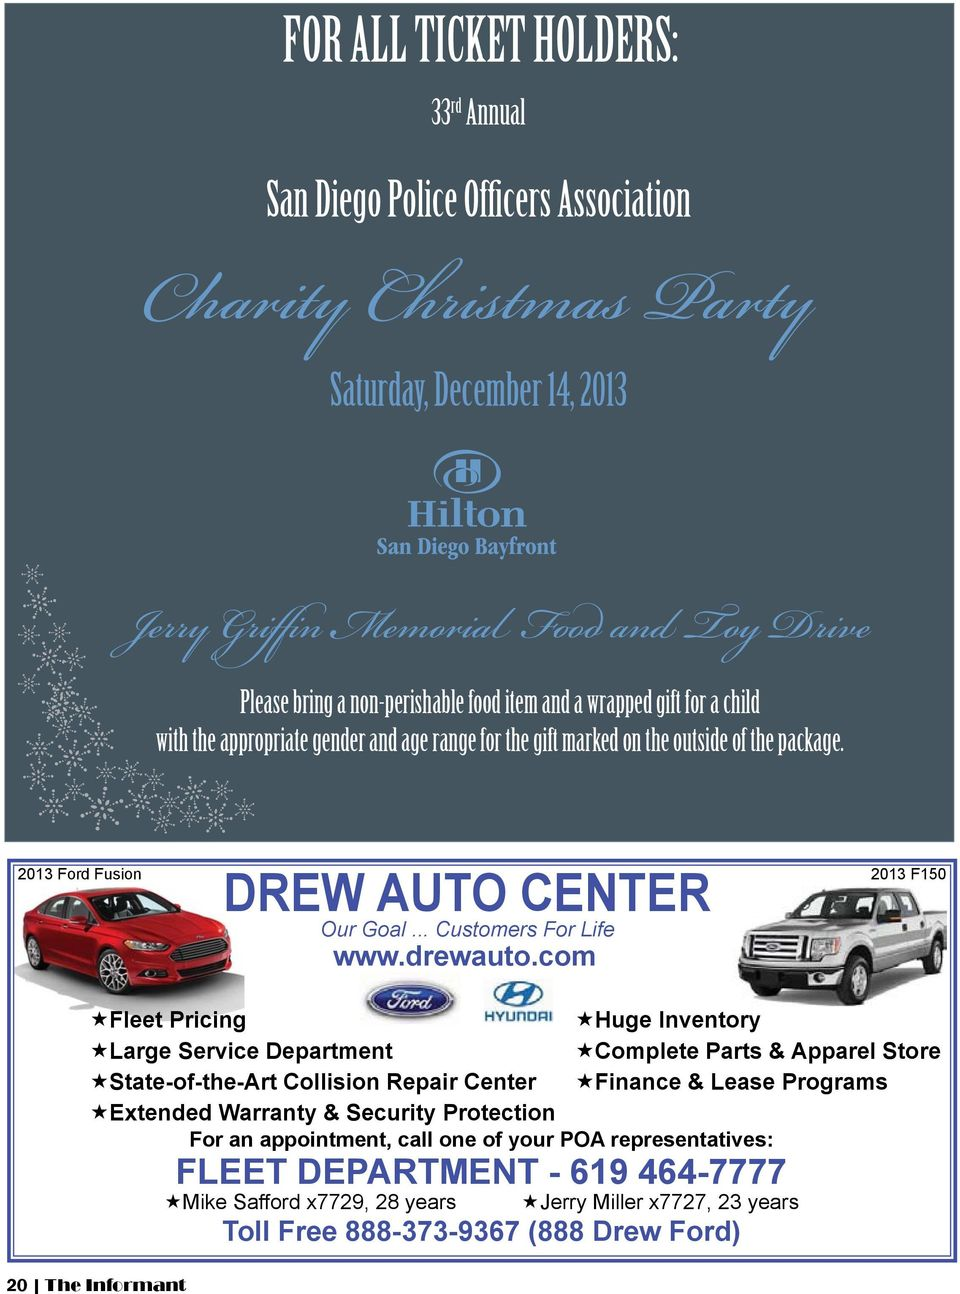 .. Customers For Life www.drewauto.